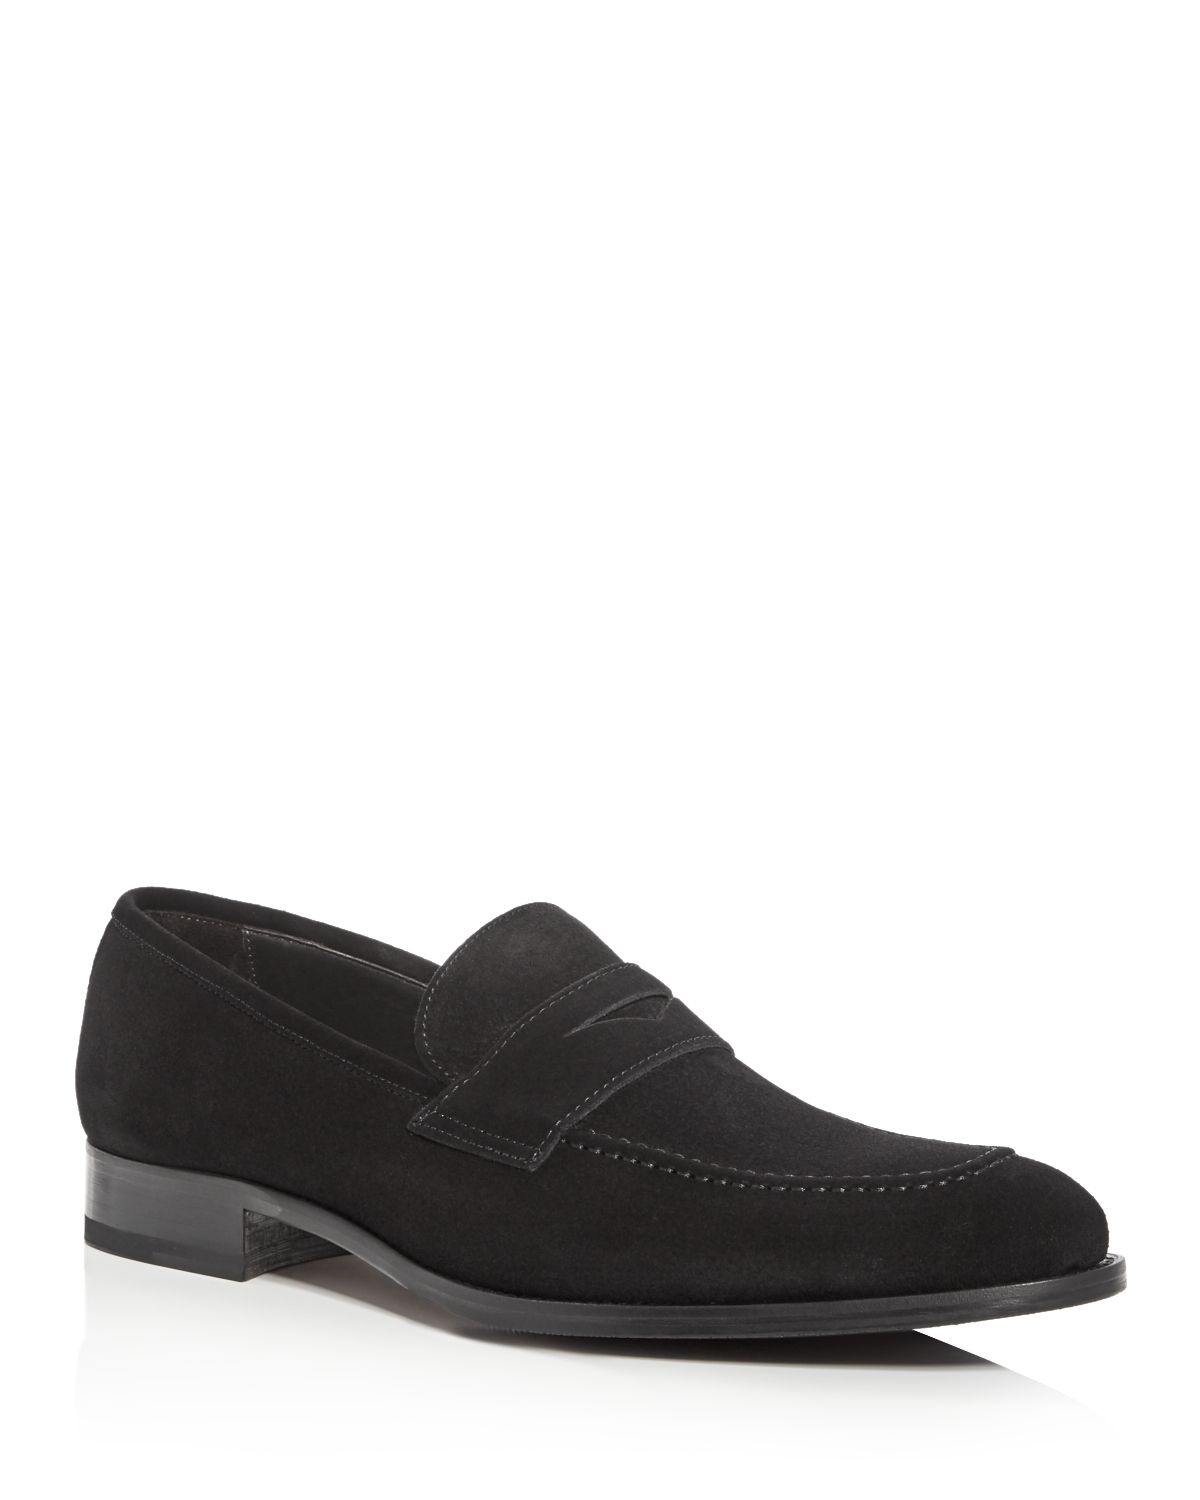 To Boot Men's James Suede Penny Loafers